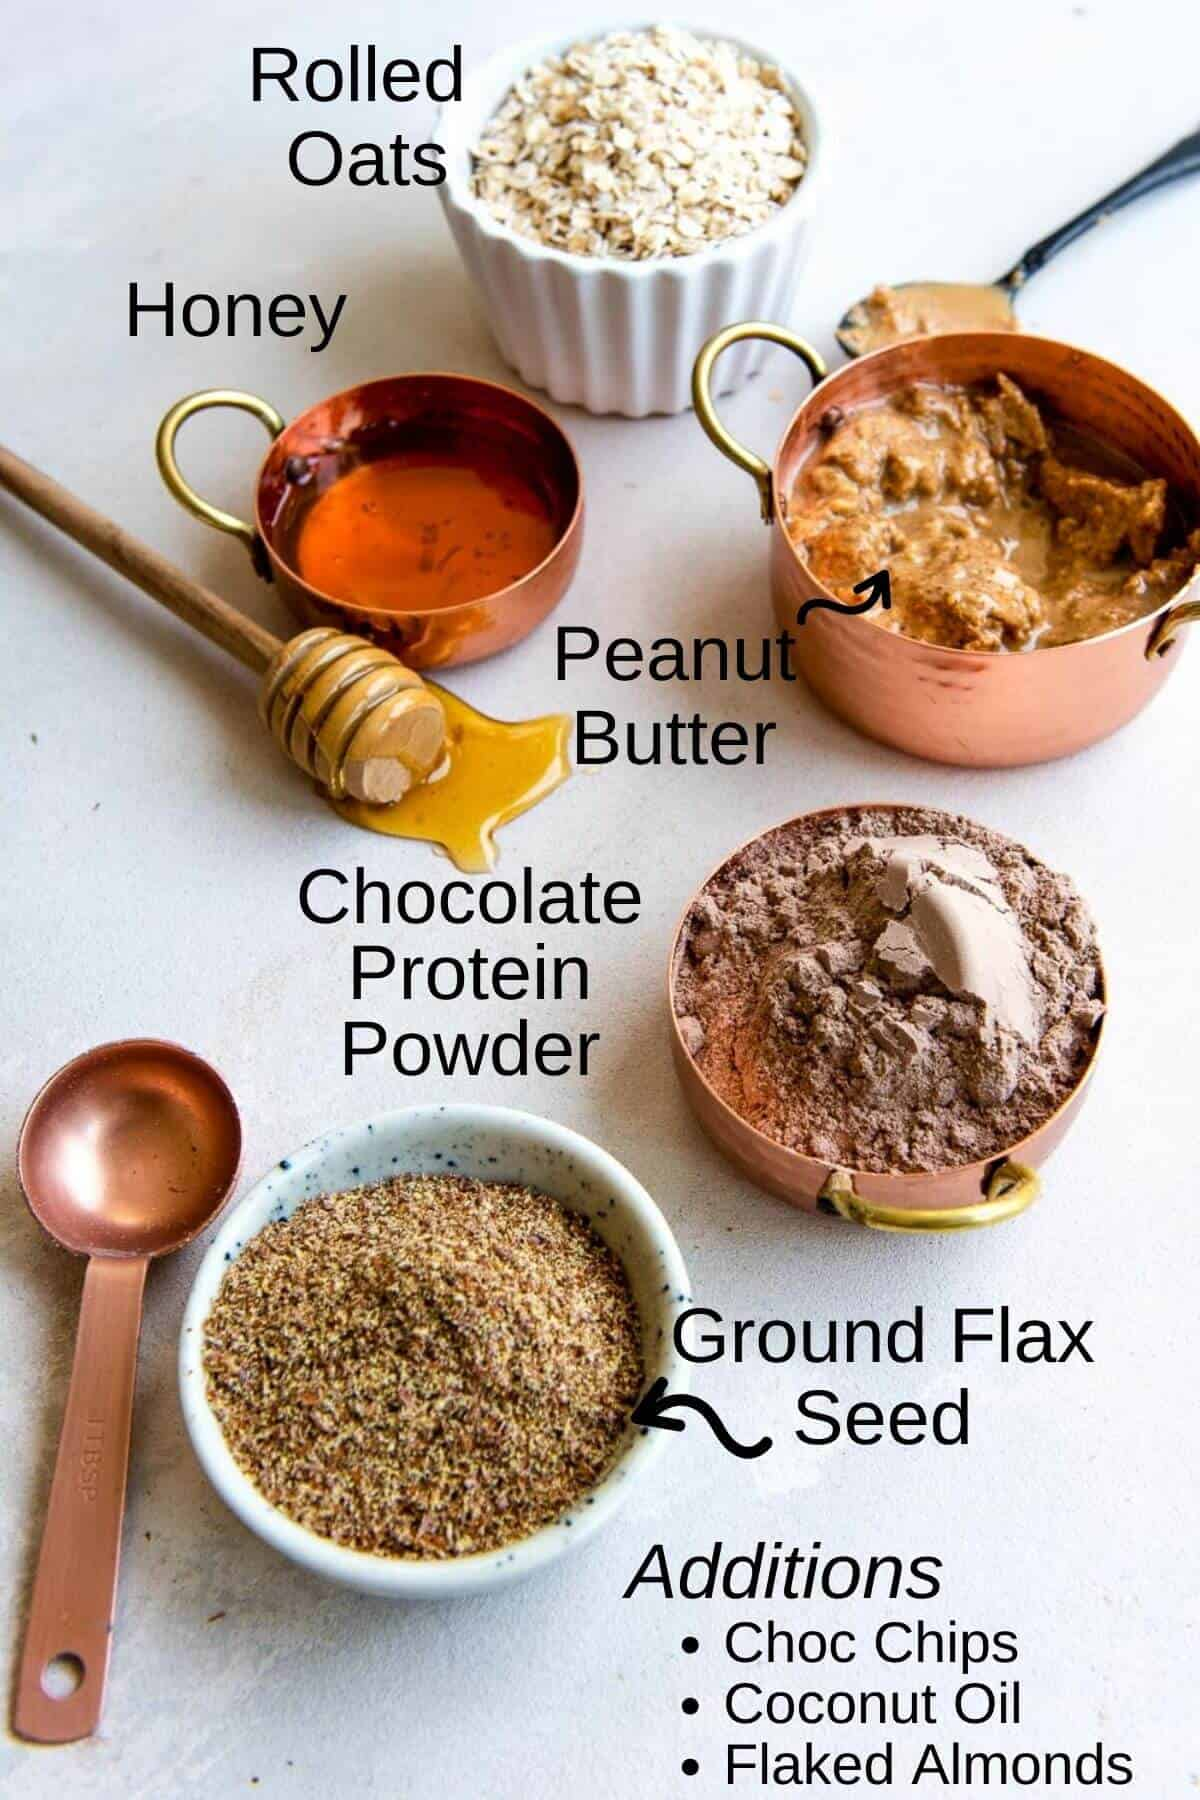 Ingredients to make no bake protein bars with oats